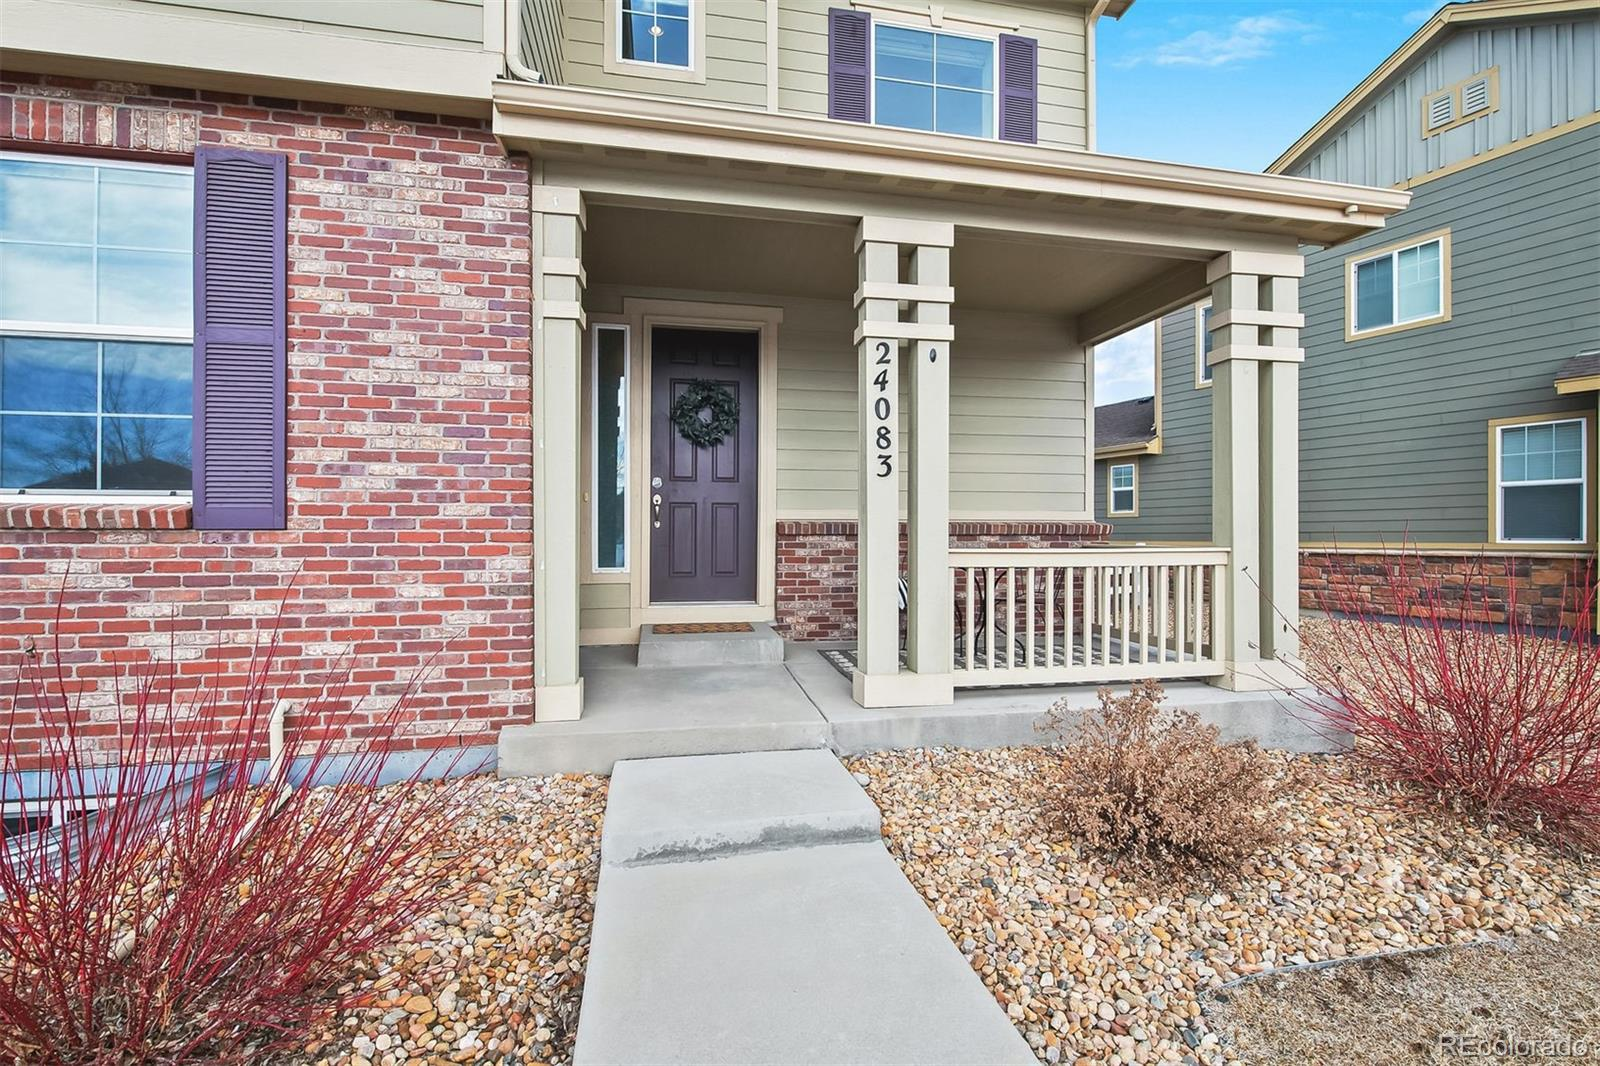 MLS# 9048750 - 3 - 24083 E Florida Avenue, Aurora, CO 80018